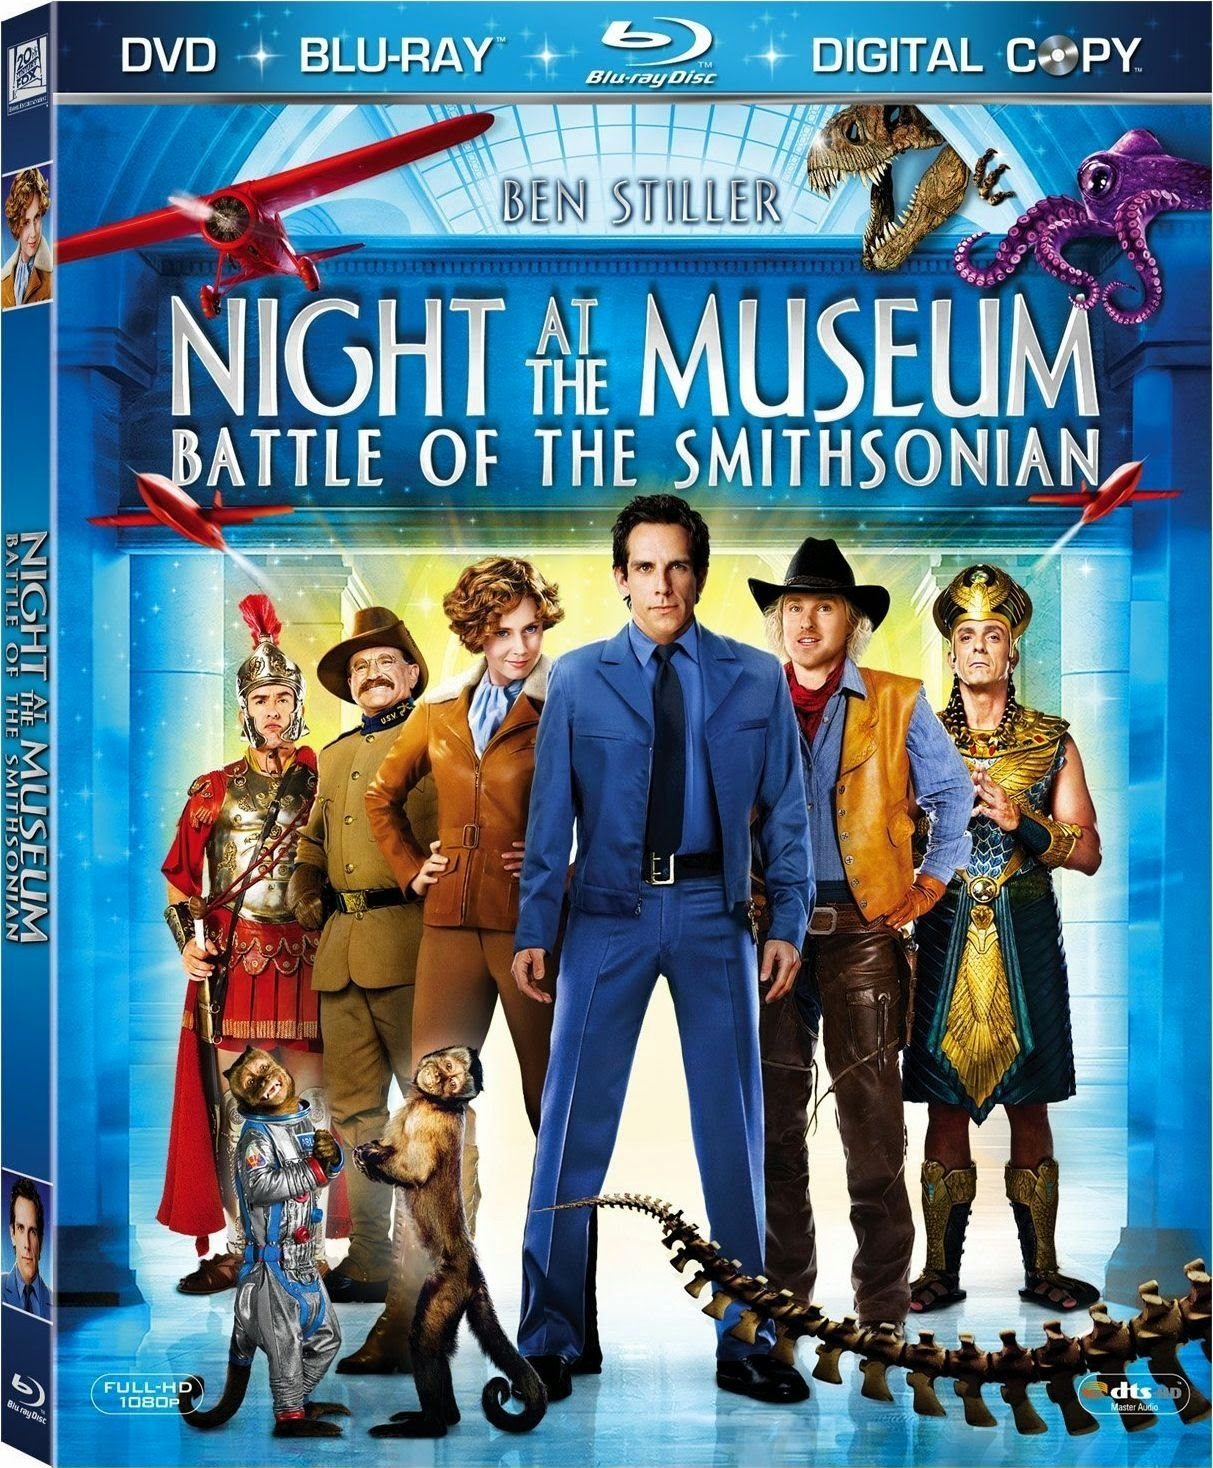 Night at the Museum: Battle of the Smithsonian - Μια Νύχτα στο Μουσείο (2009) ταινιες online seires xrysoi greek subs